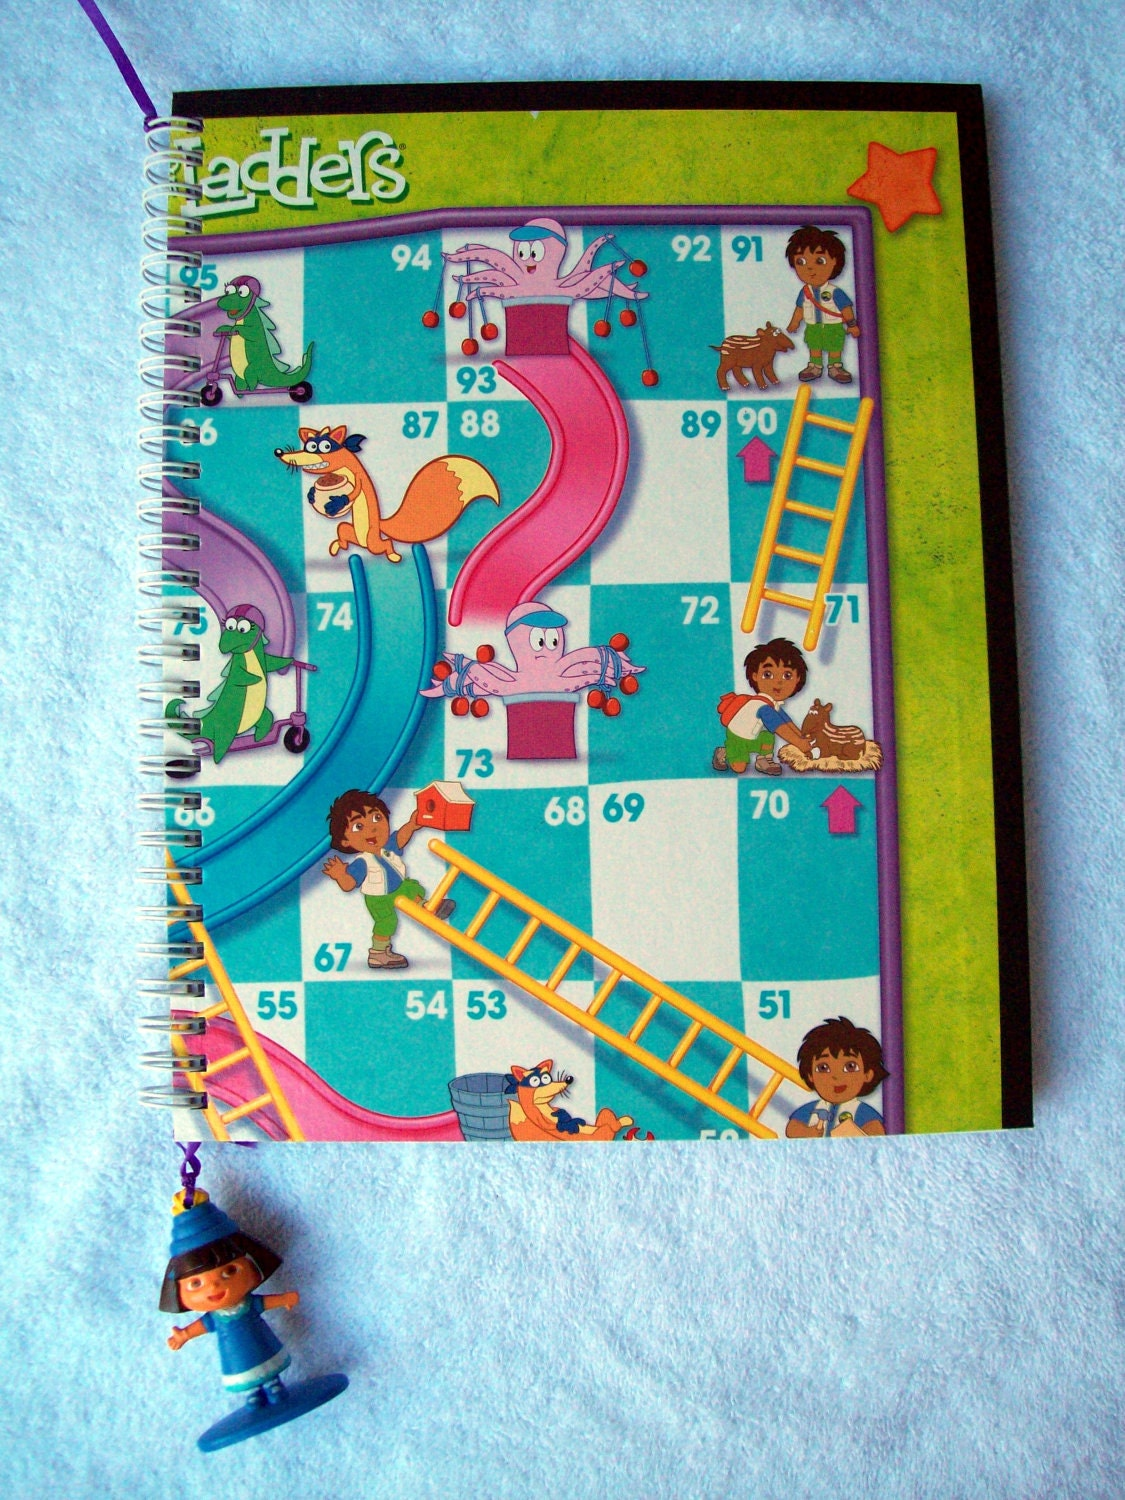 Chutes And Ladders Board Printable Chutes and ladders dora the